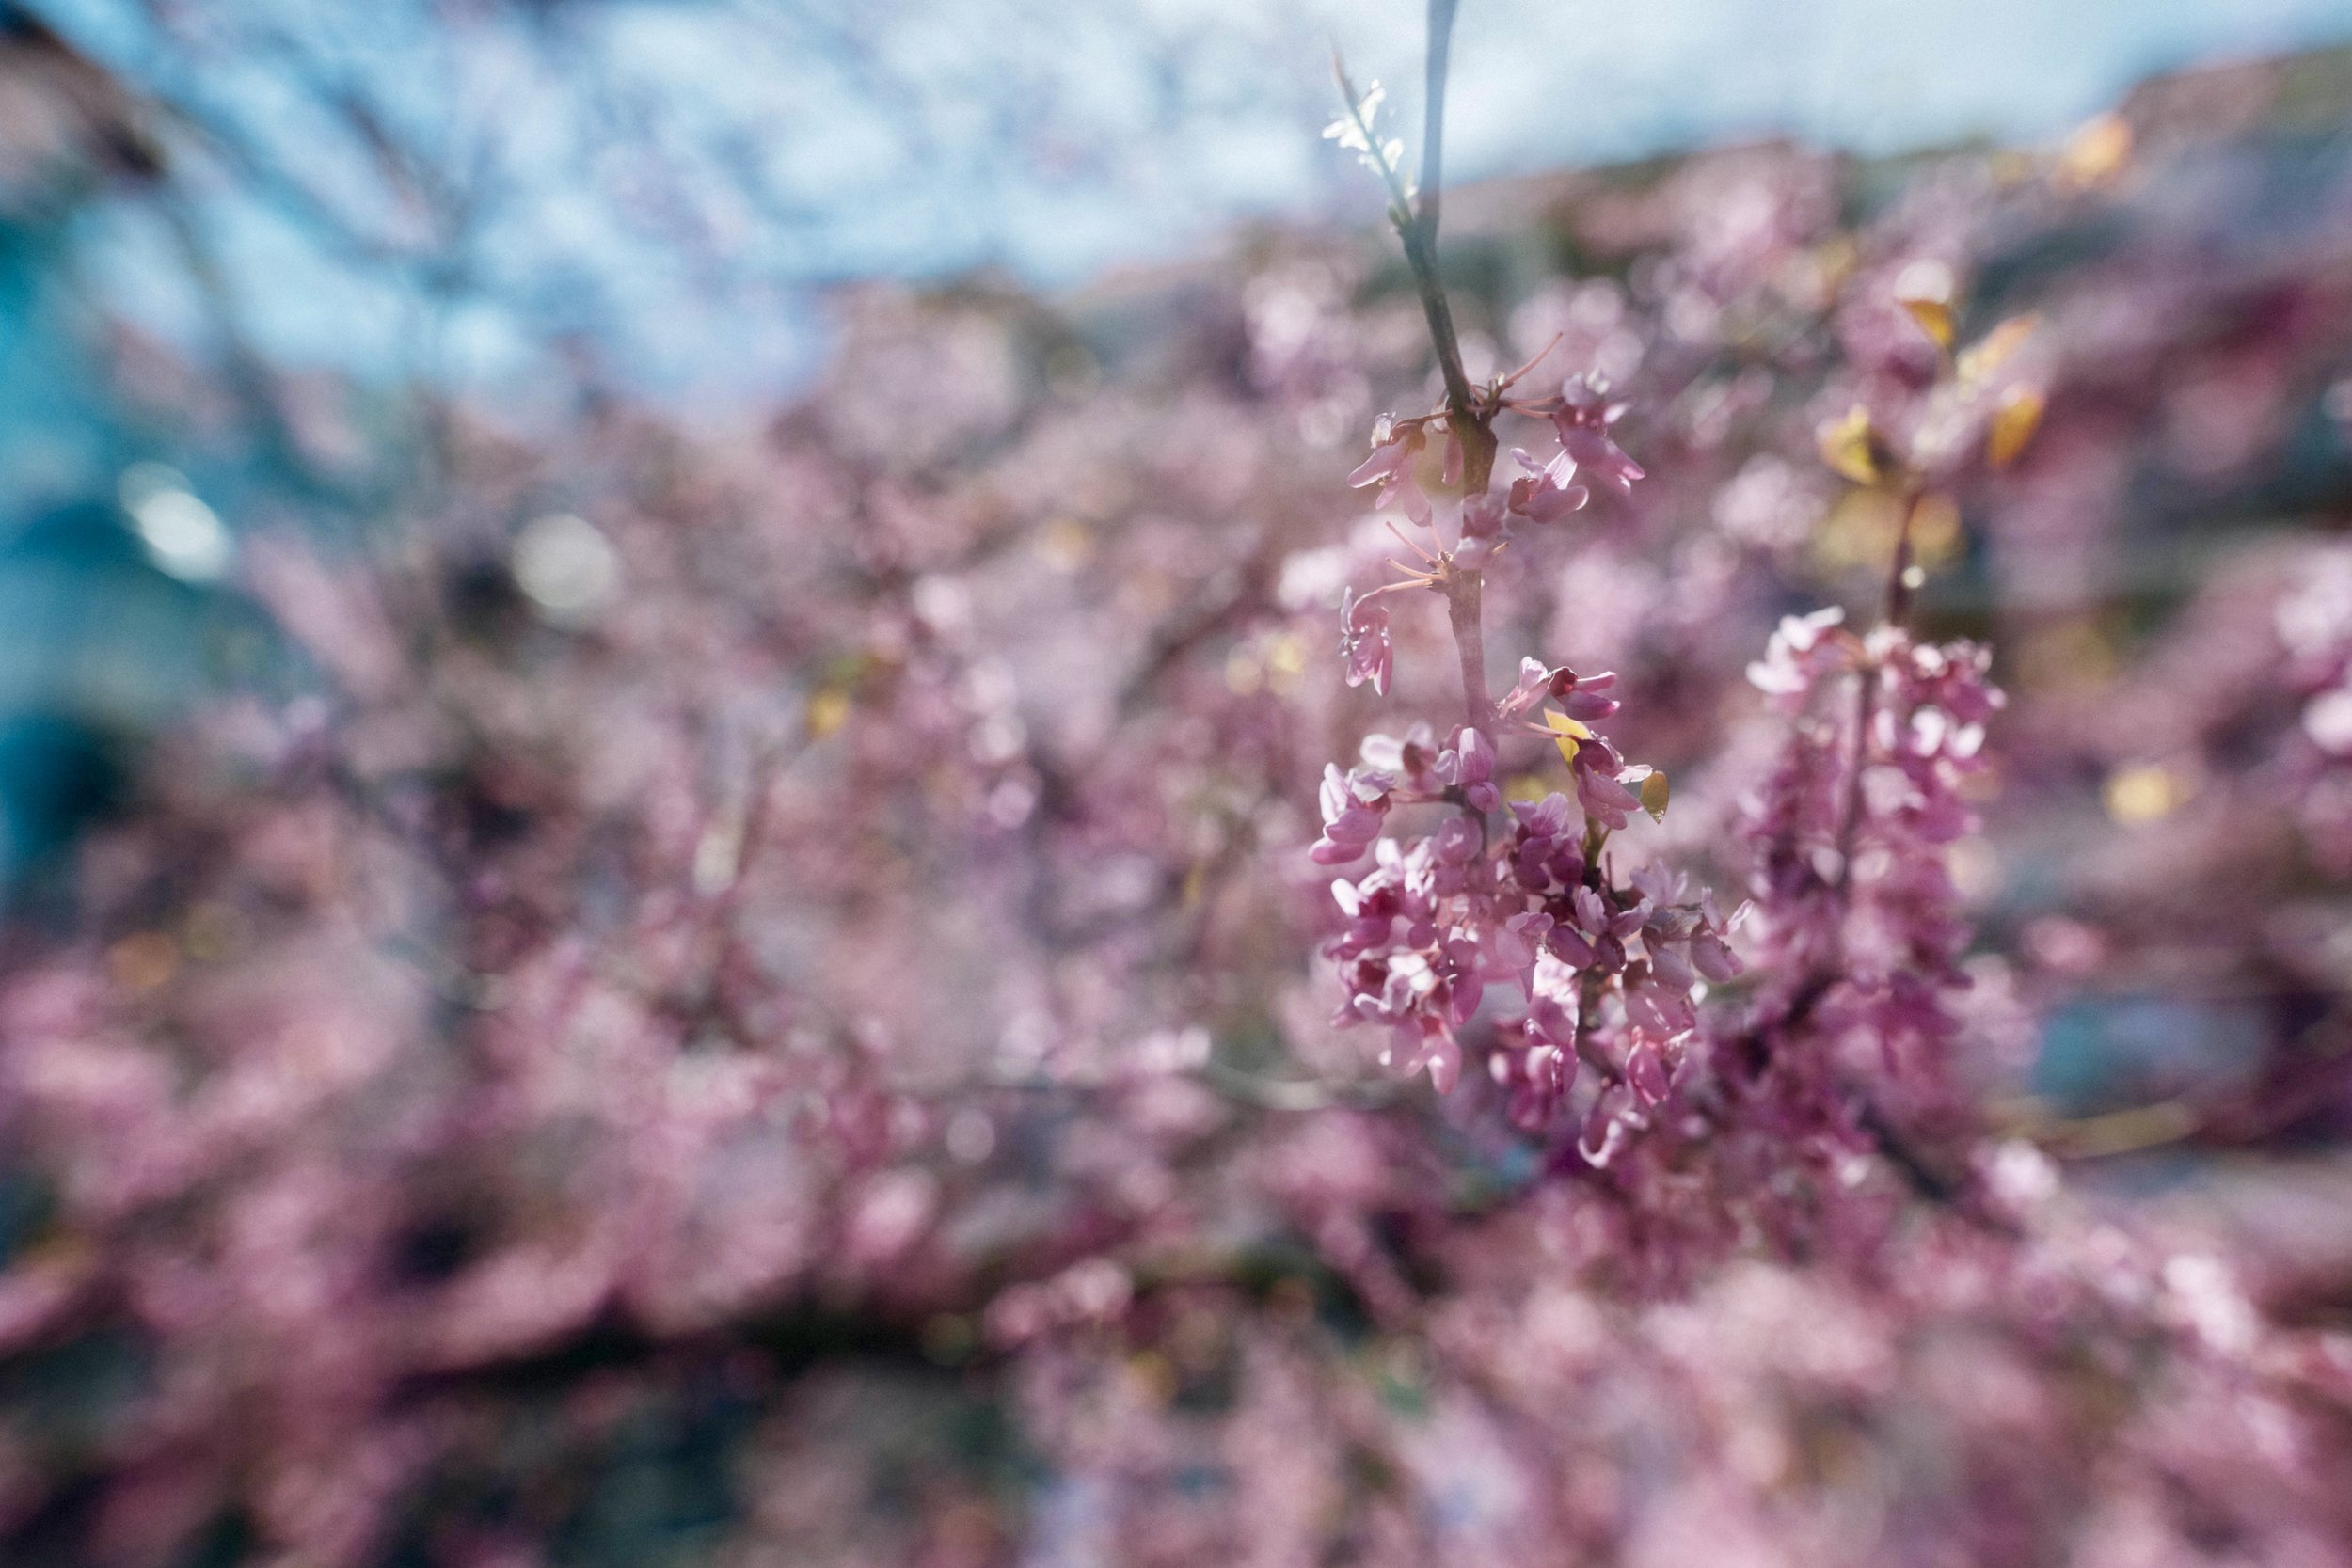 Springtime double exposure this week in downtown Greenville